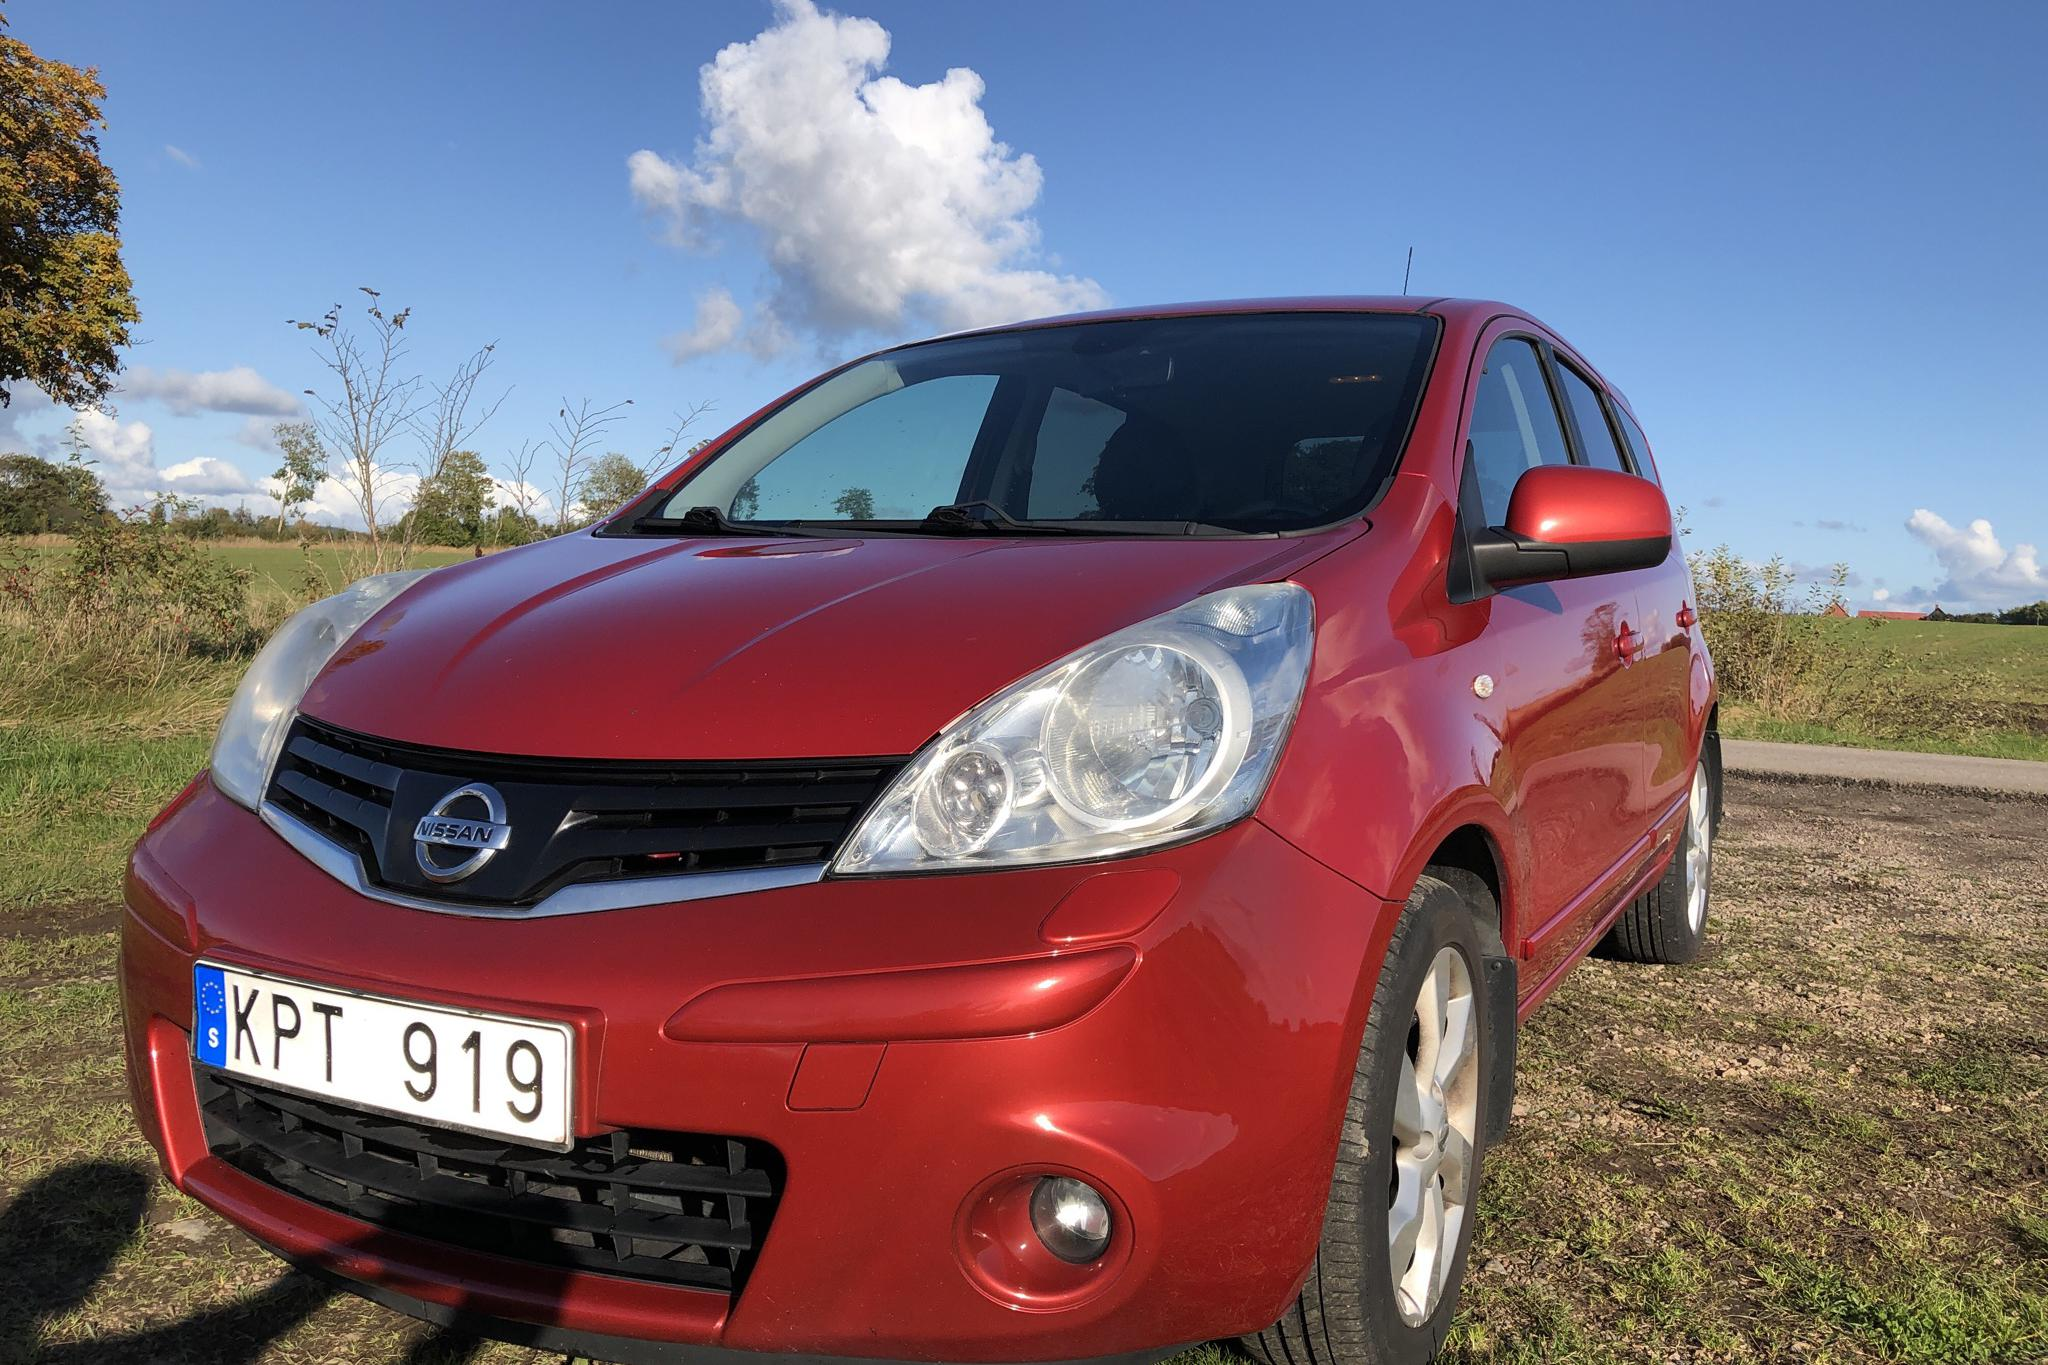 Nissan Note 1.6 (110hk) - 110 000 km - Automatic - red - 2010